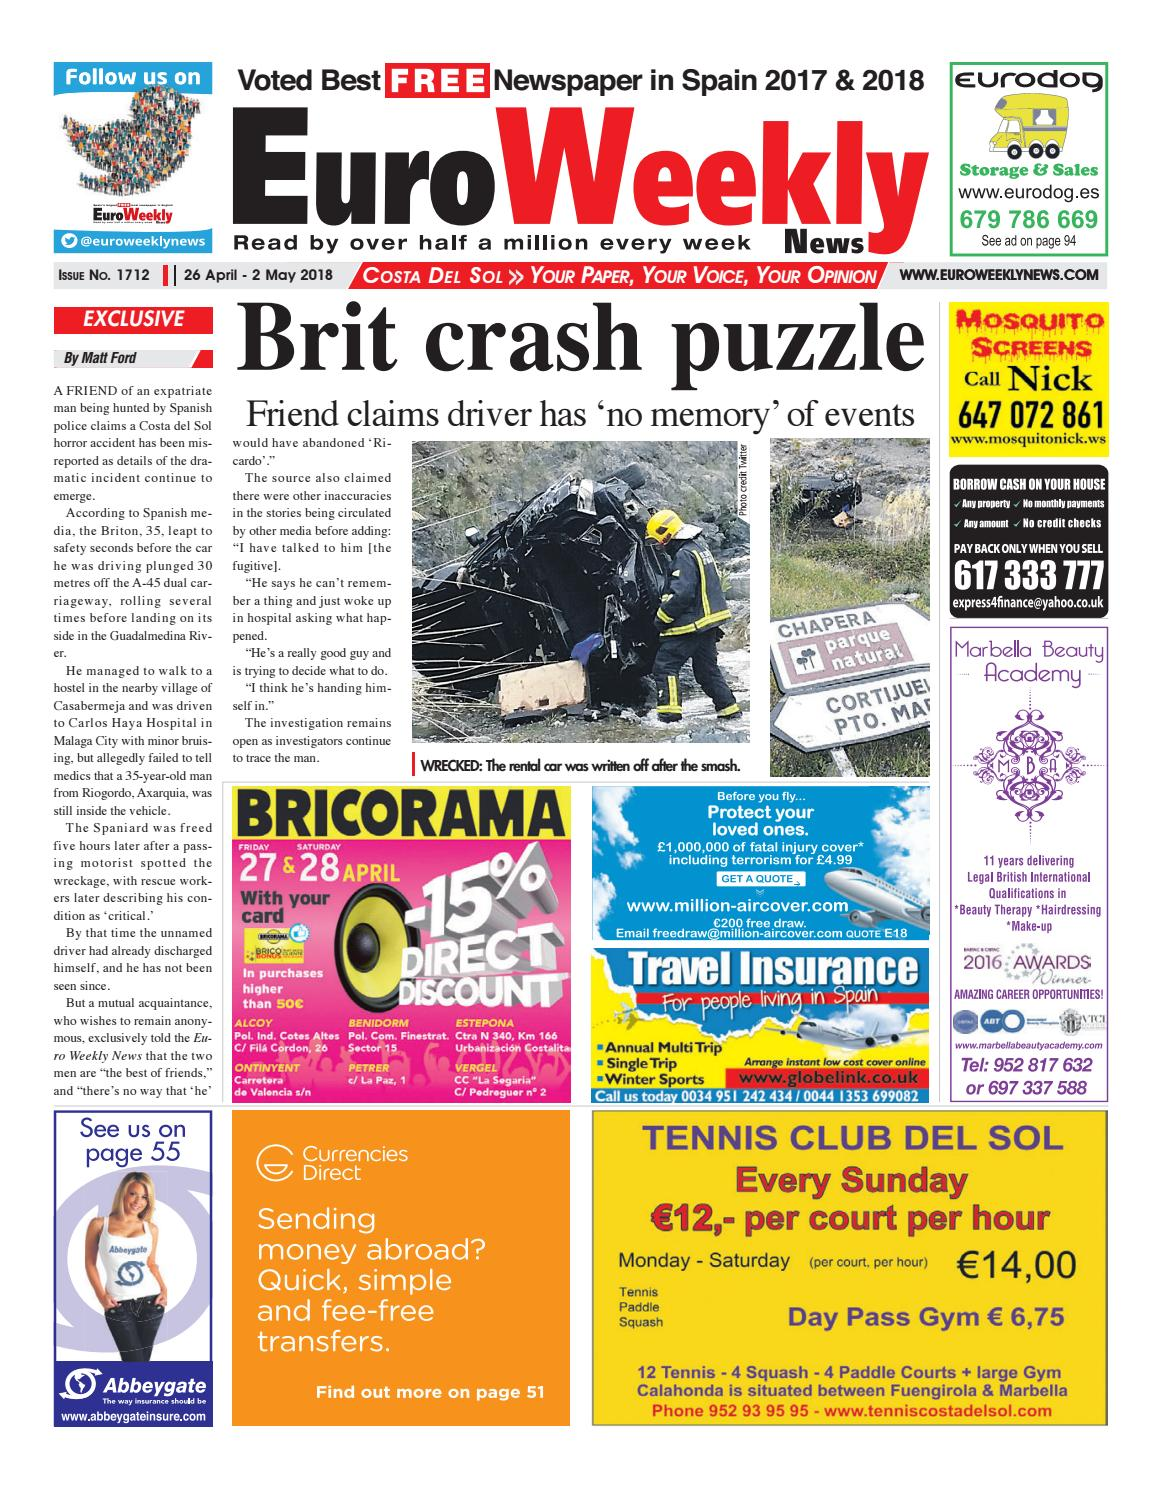 Euro Weekly News Costa Del Sol  May  By Euro Weekly News Media S A Issuu